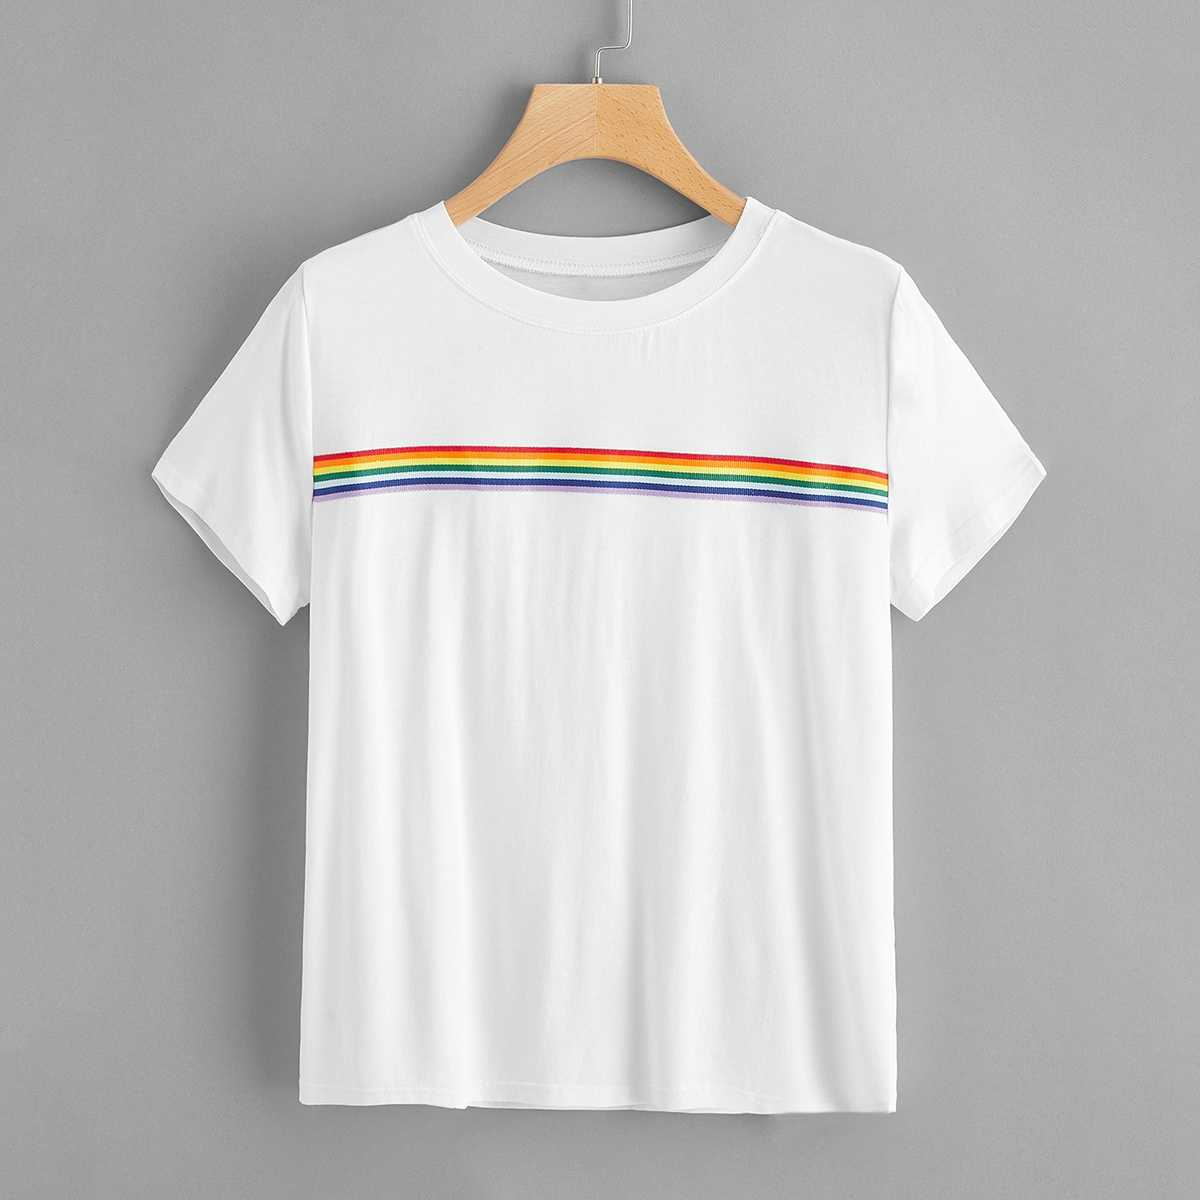 1Plus1 Girls Rainbow Striped Tee in White by ROMWE on GOOFASH